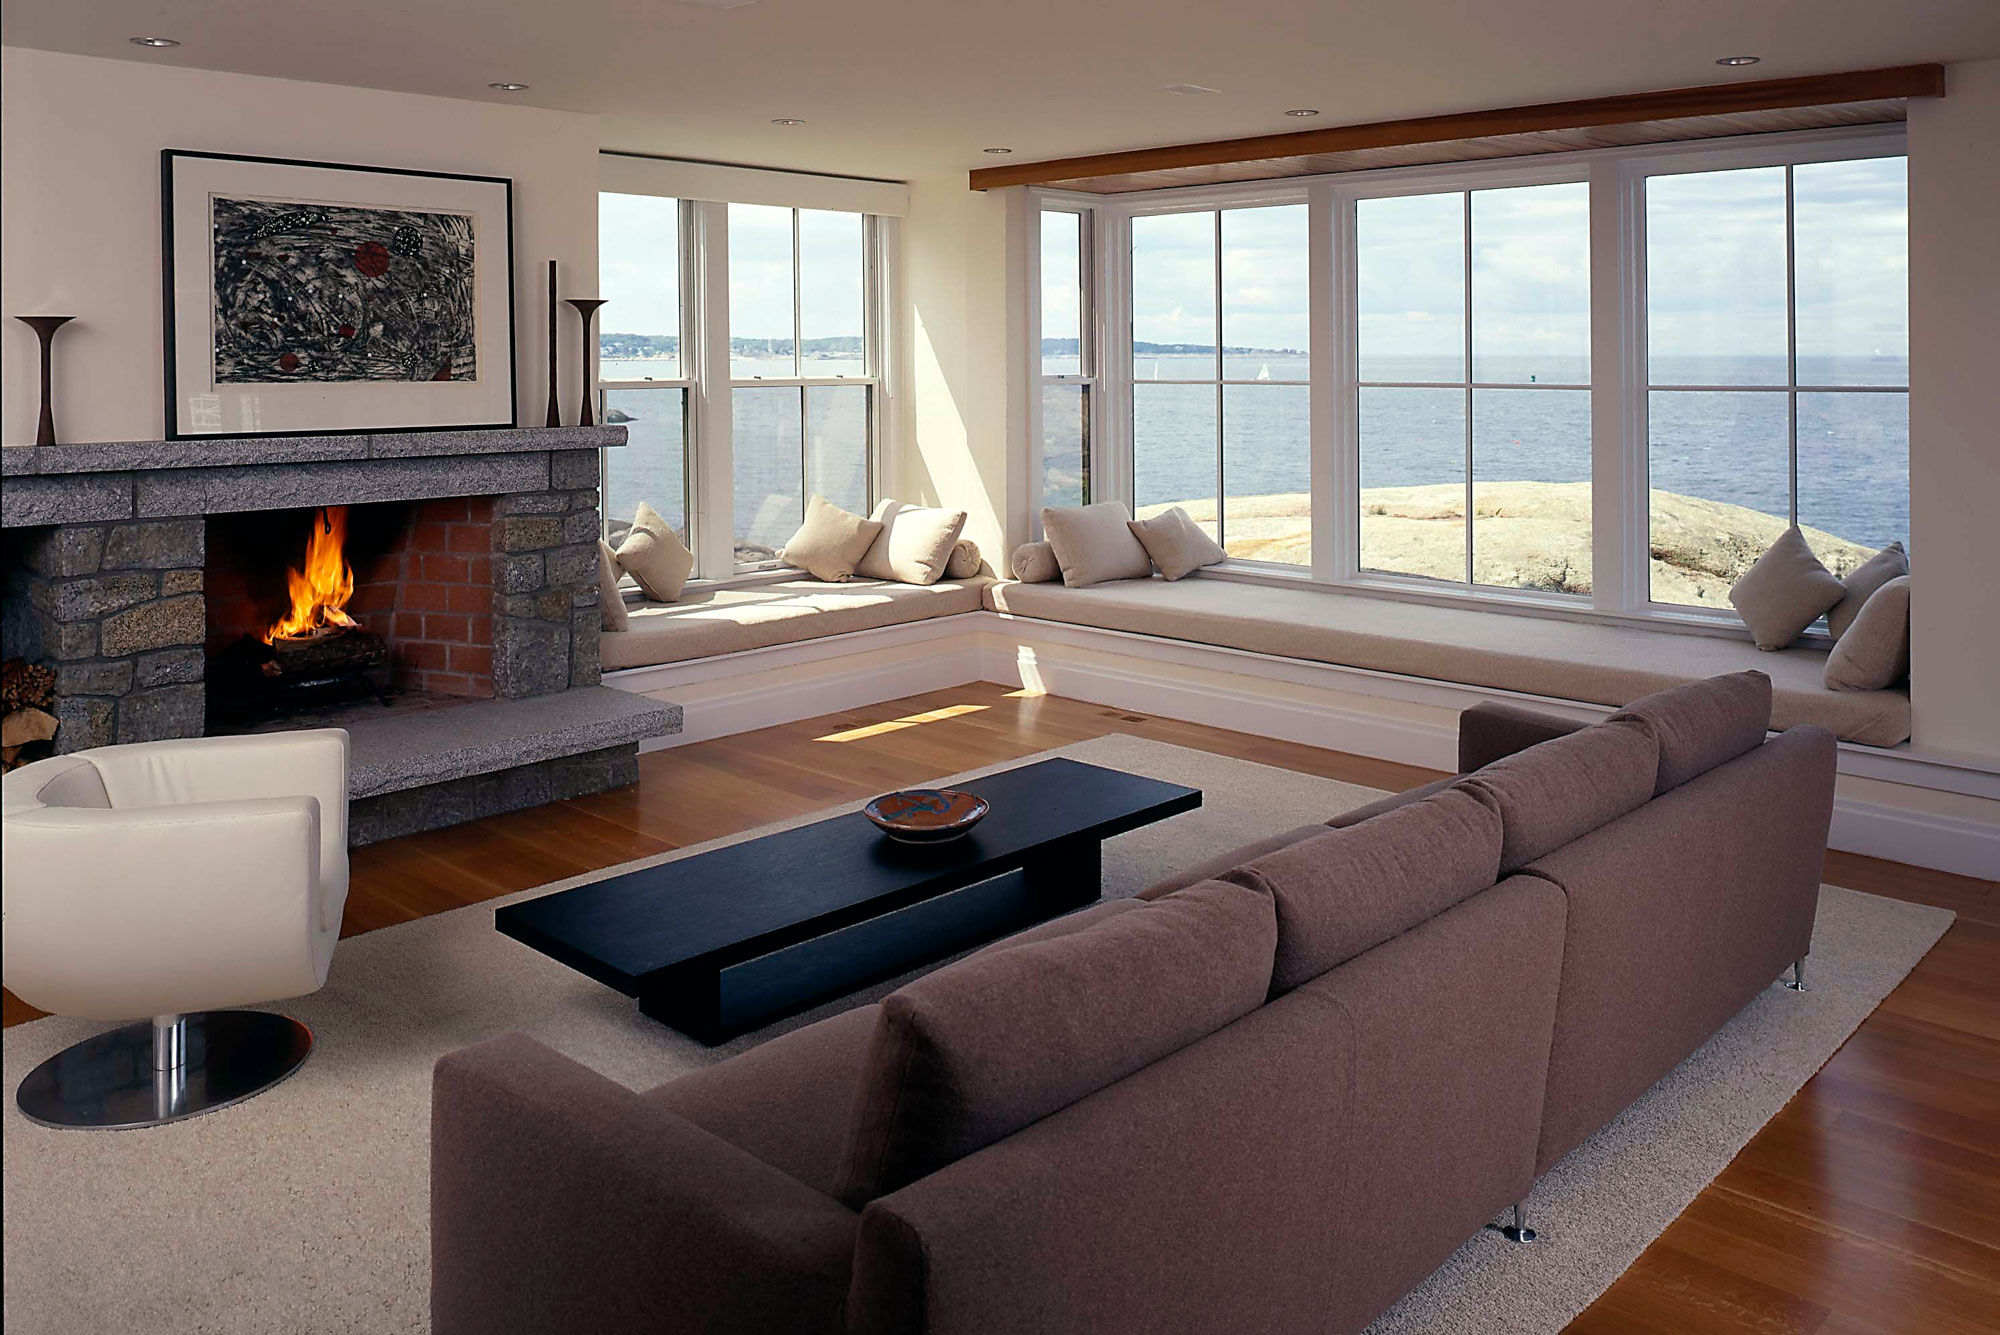 living room interior with fireplace and ocean views